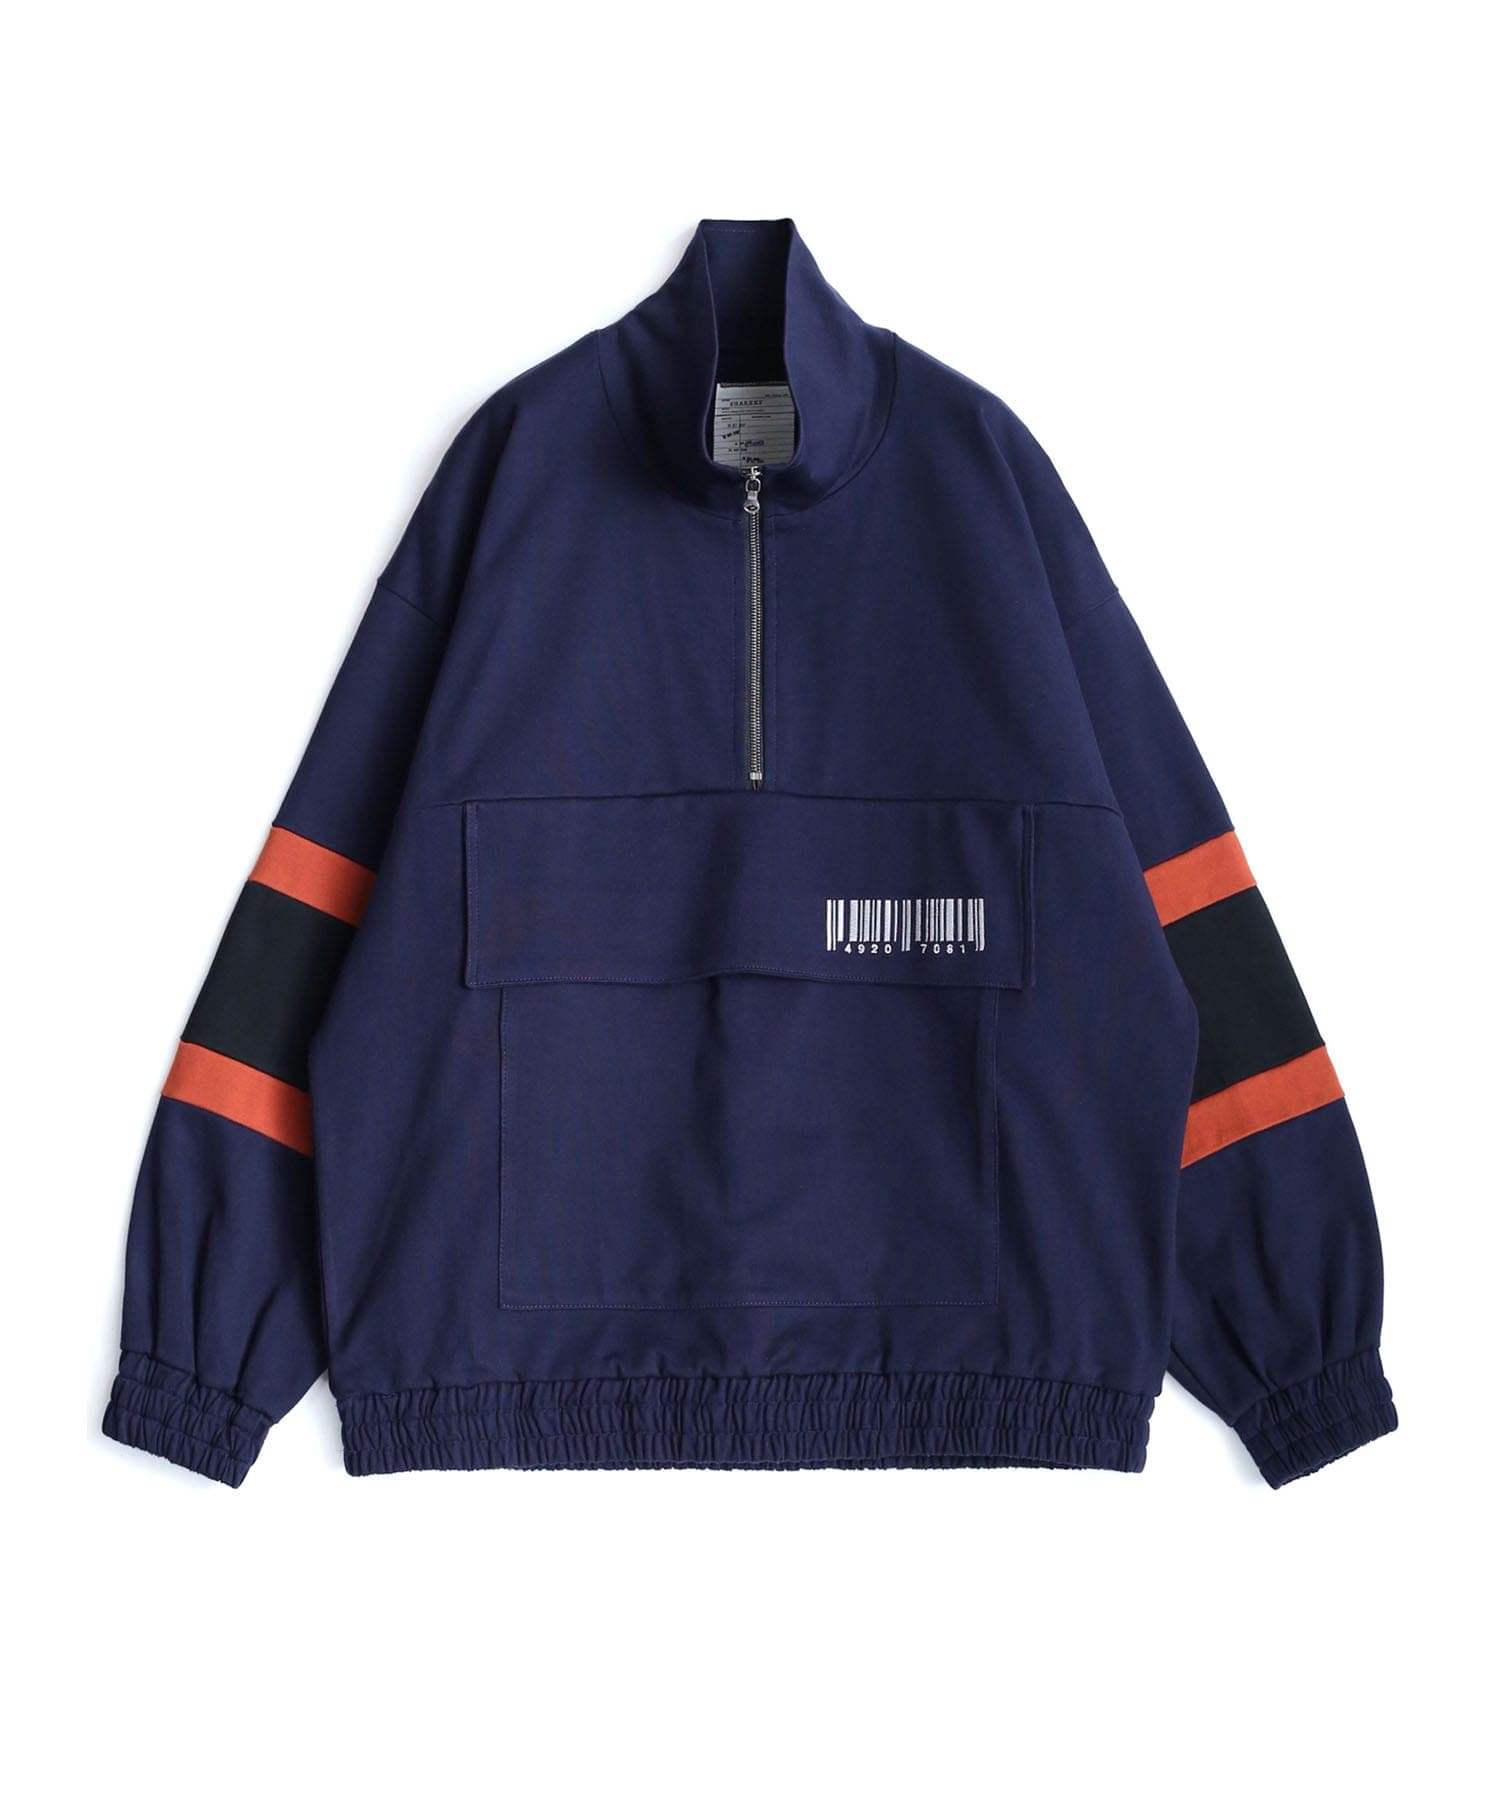 BIG POCKET HALF ZIP PO